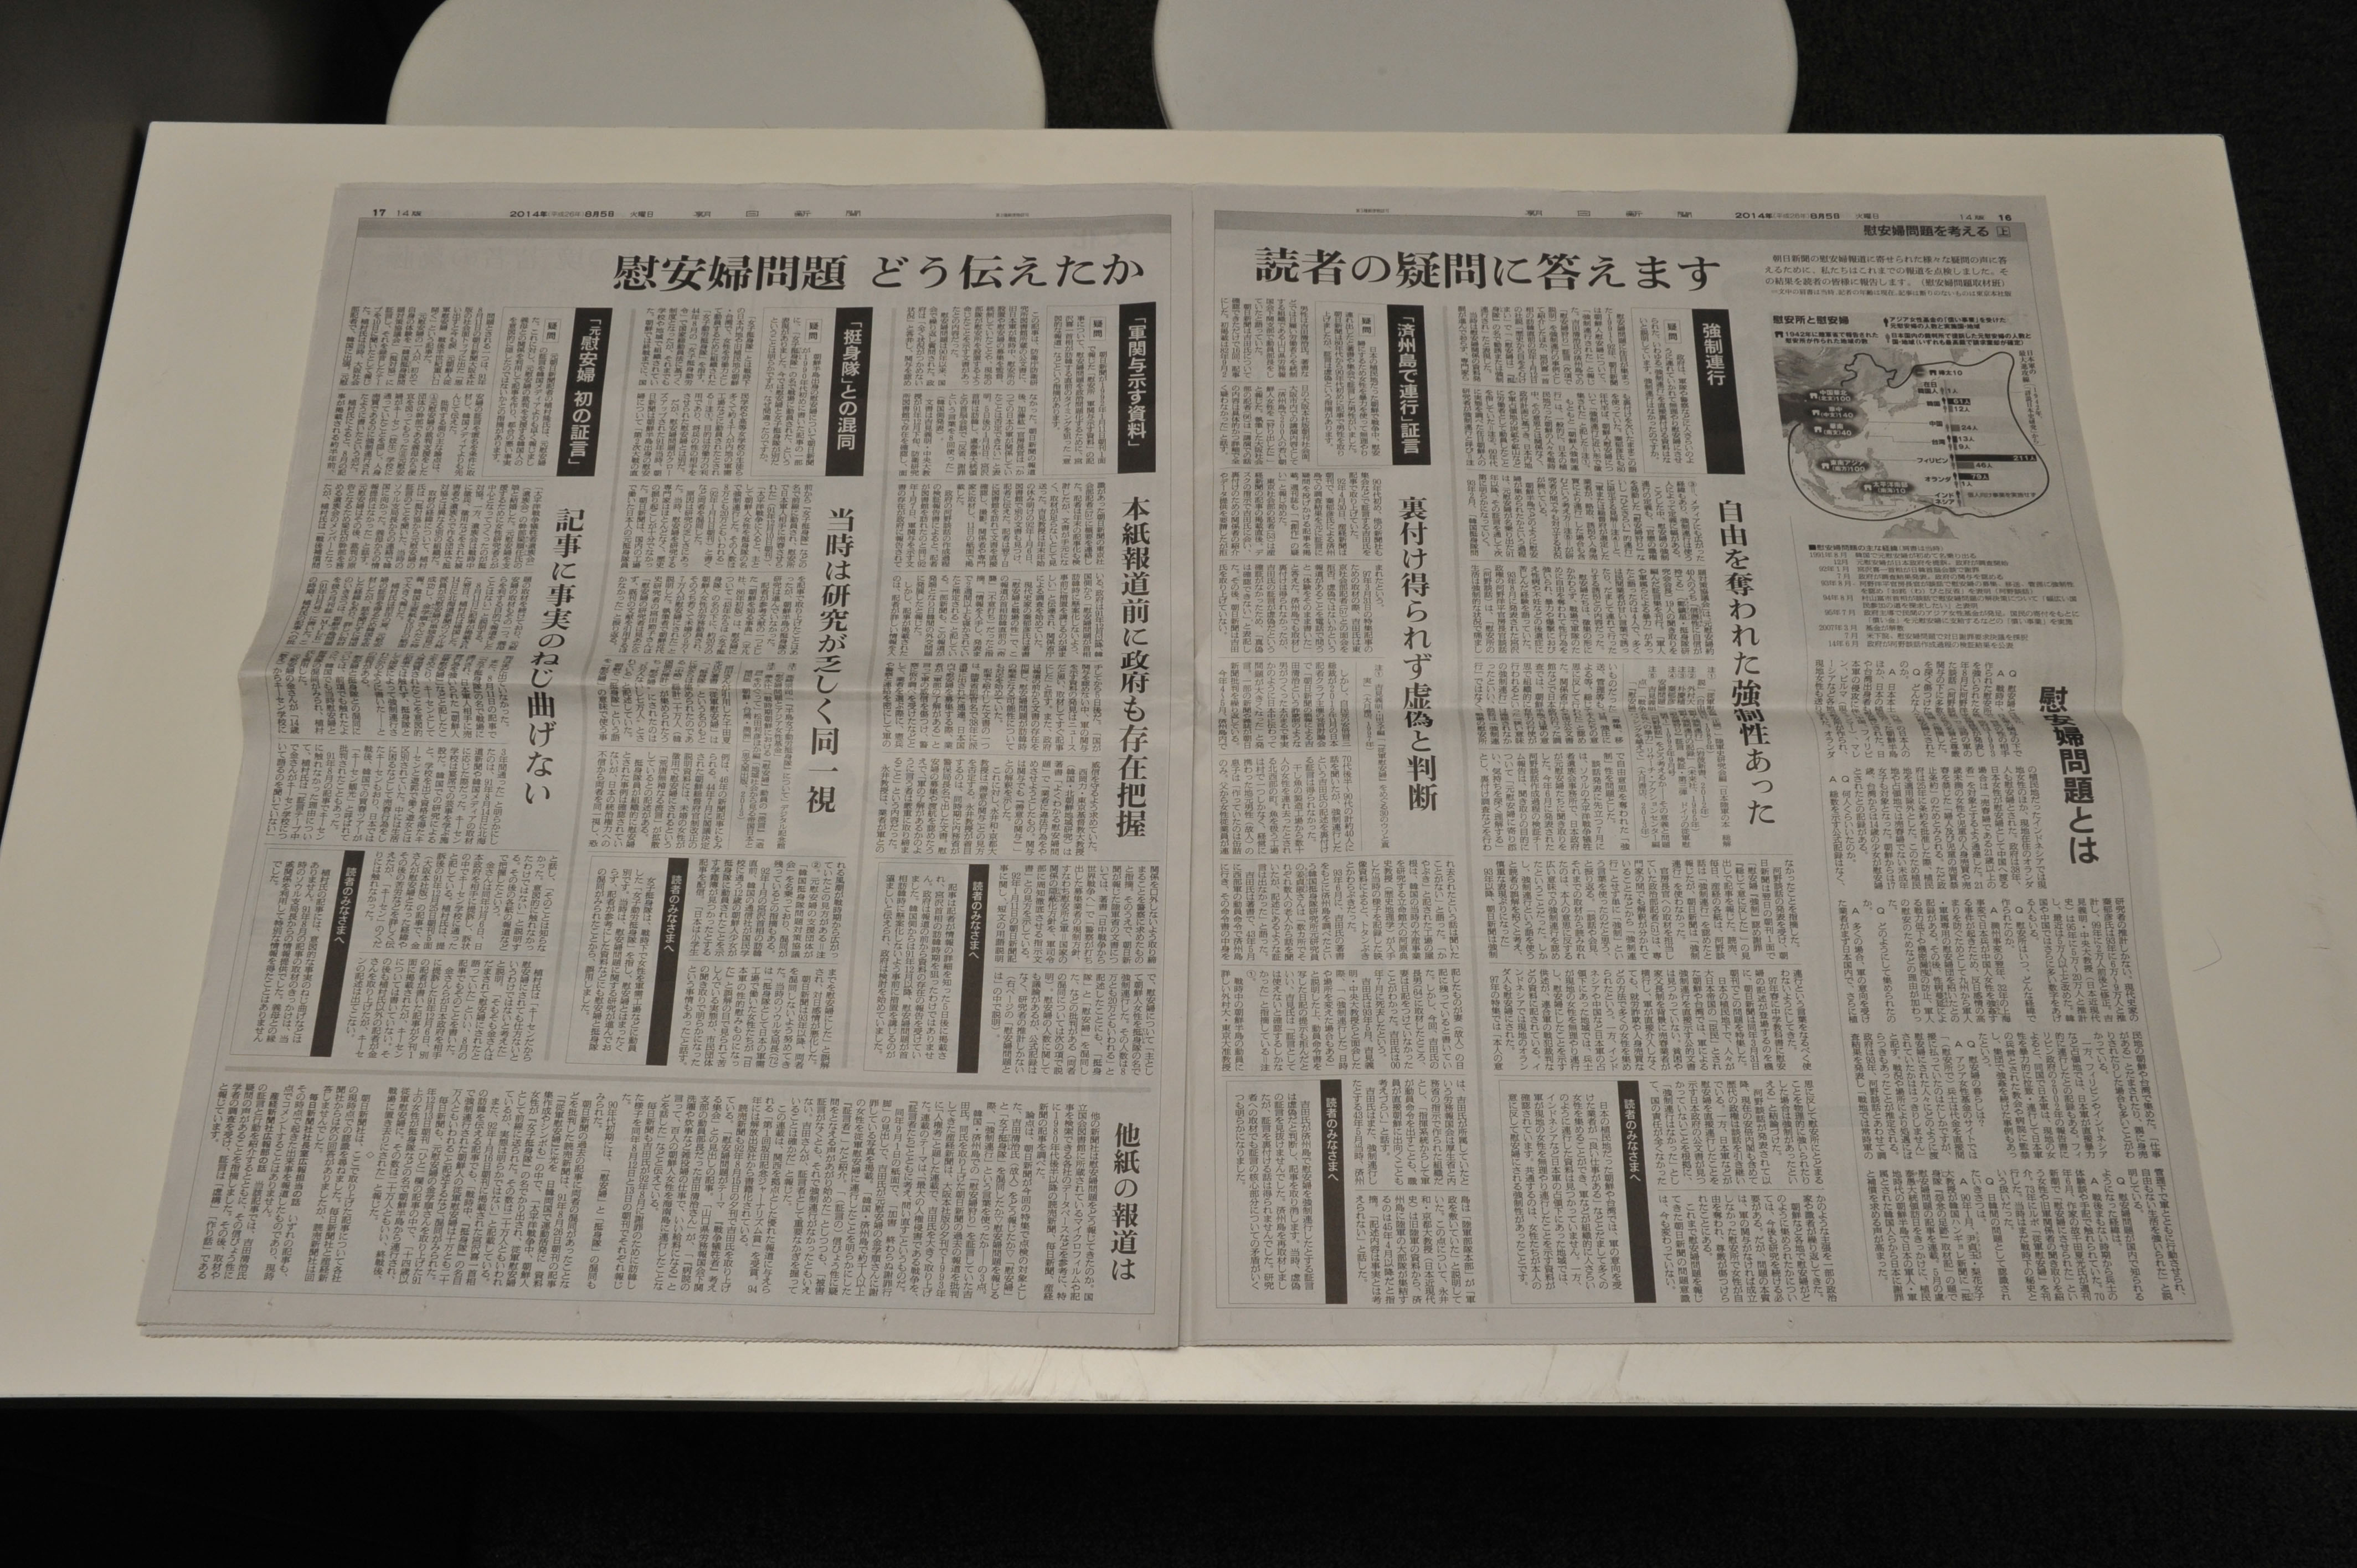 Revisiting the past: The Asahi Shimbun published a two-page spread on Aug. 5 that included an explanation of erroneous reporting it published on the topic of the so-called comfort women in the 1980s and '90s. | YOSHIAKI MIURA